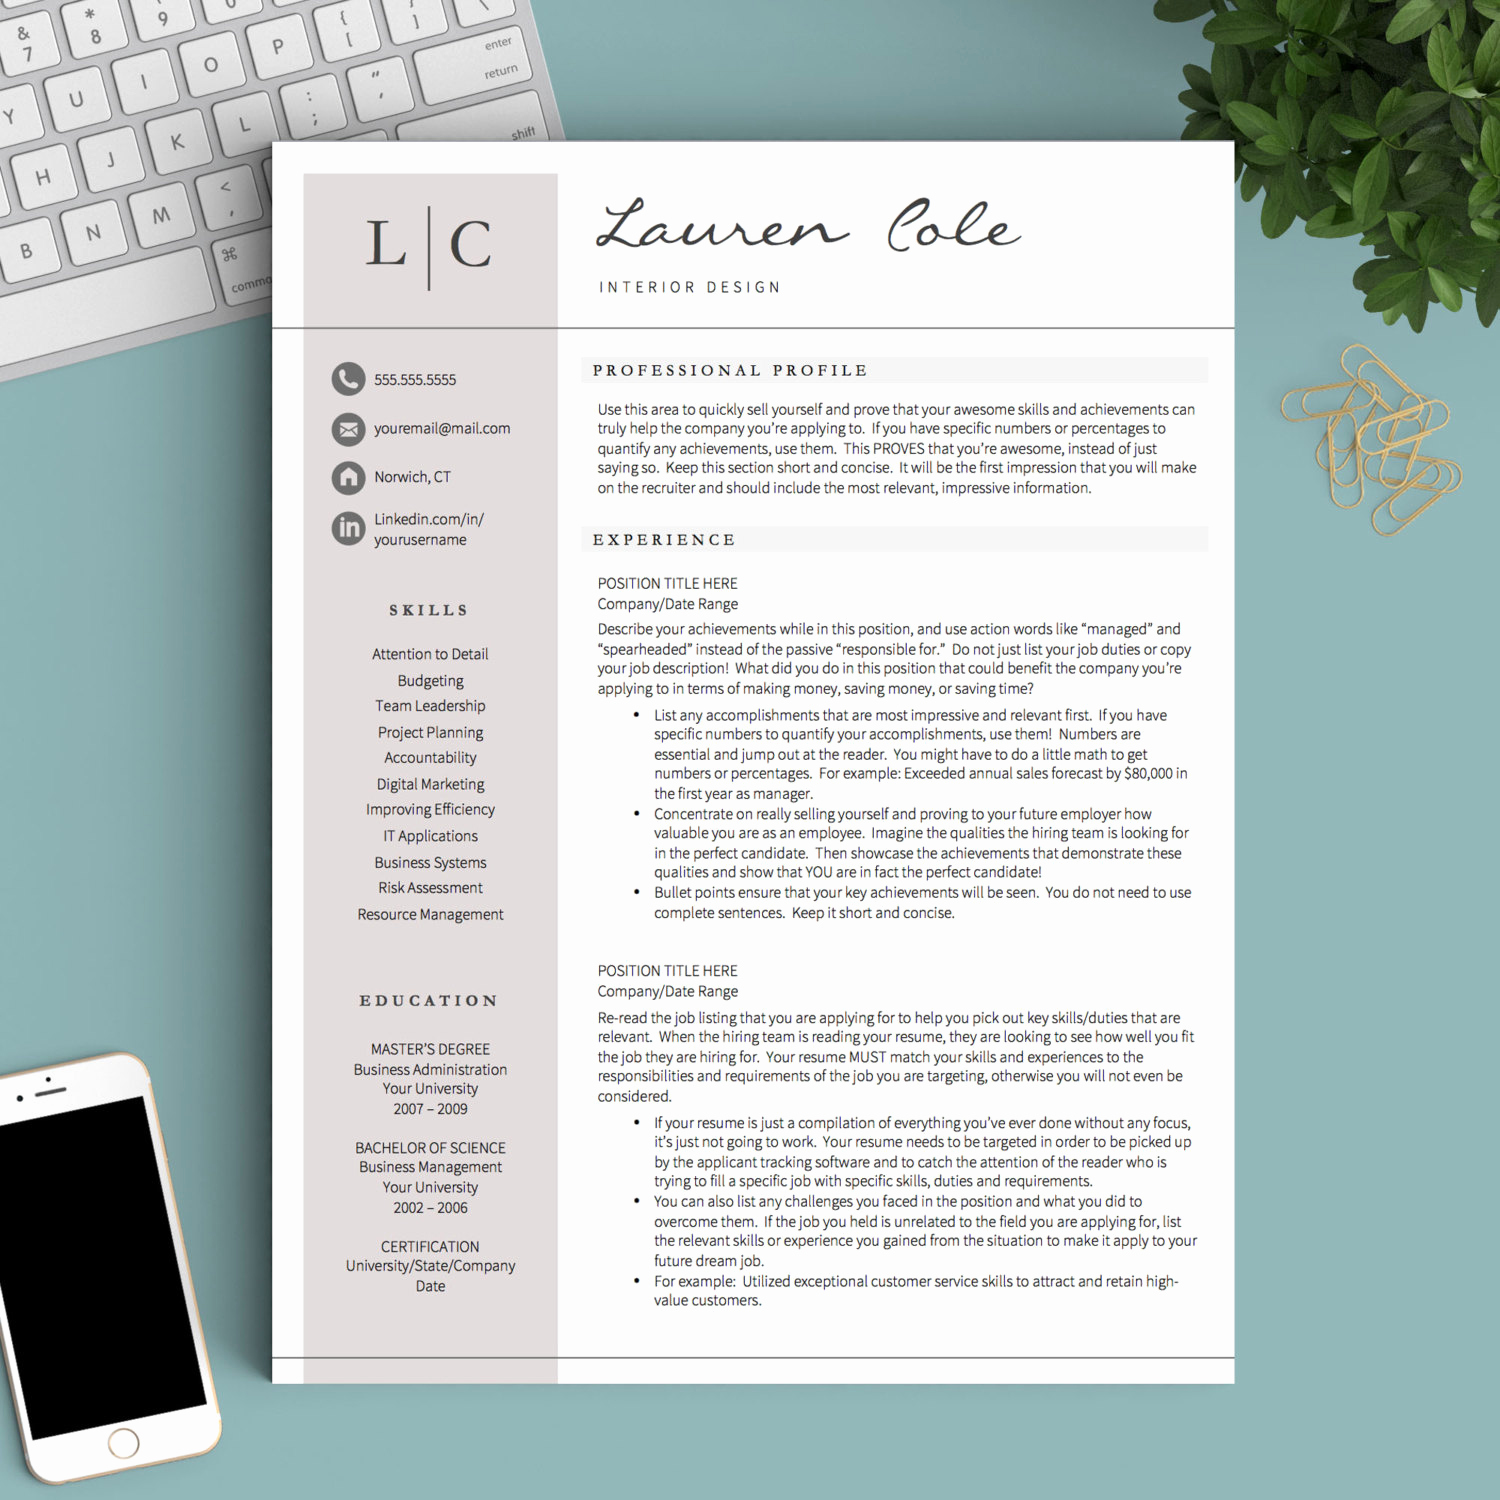 Free Creative Resume Templates Word Luxury Creative Resume Template for Word & Pages 1 2 and 3 Page